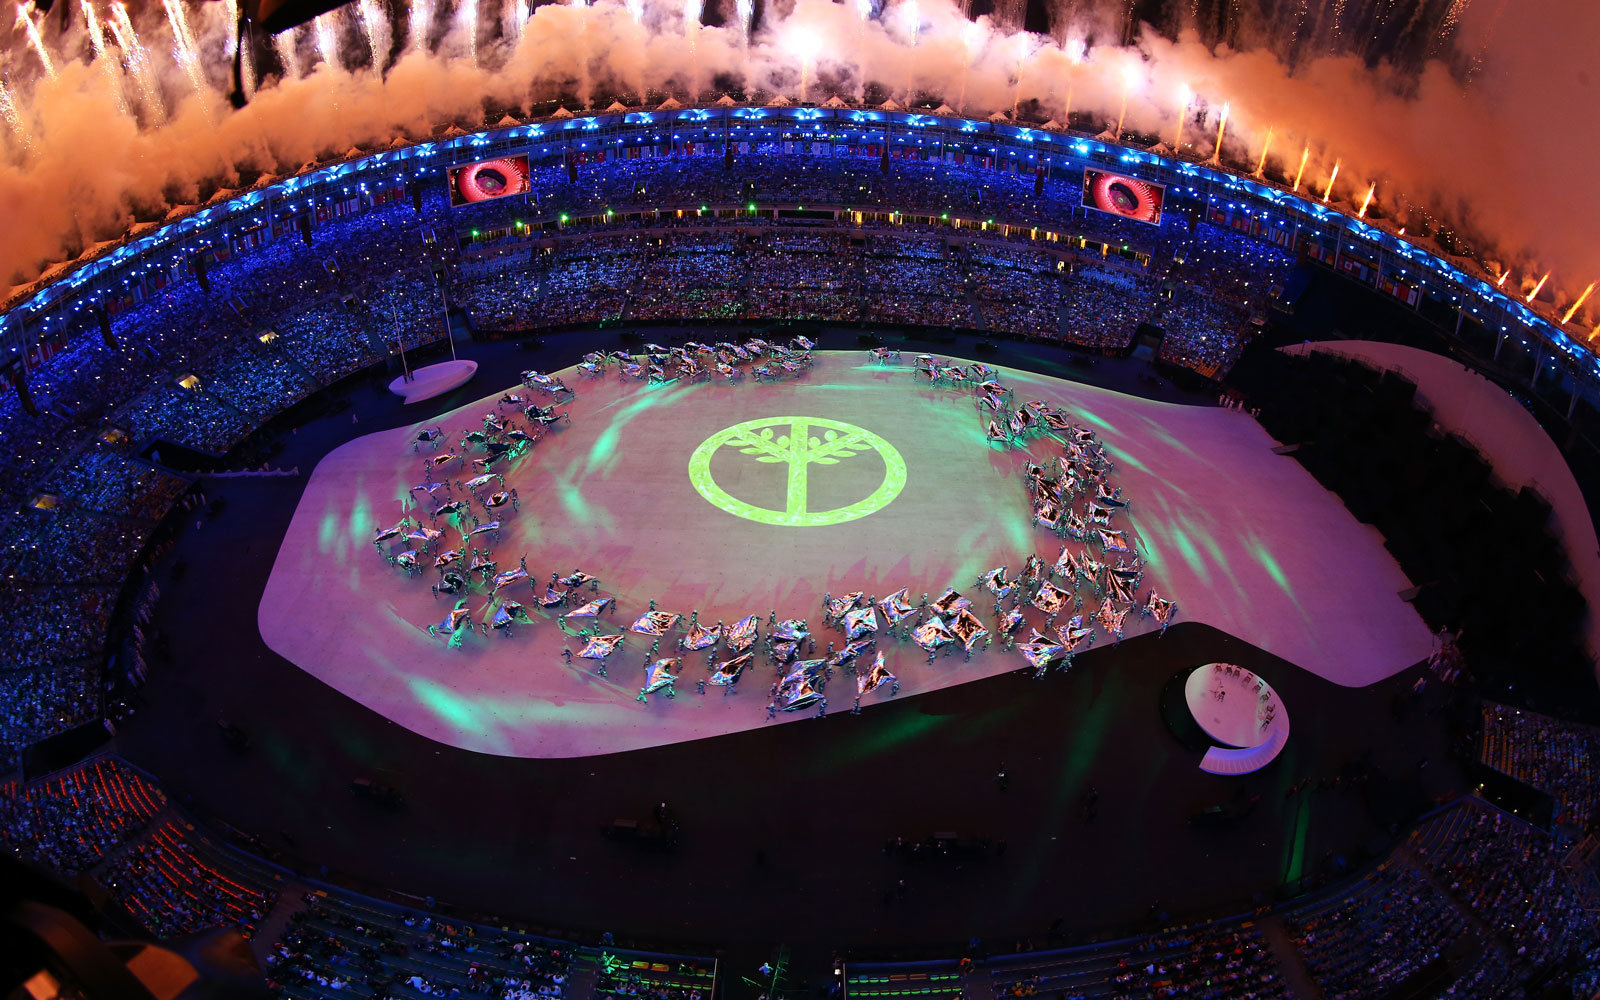 Highlights from the Olympics Opening Ceremony in Rio de Janeiro